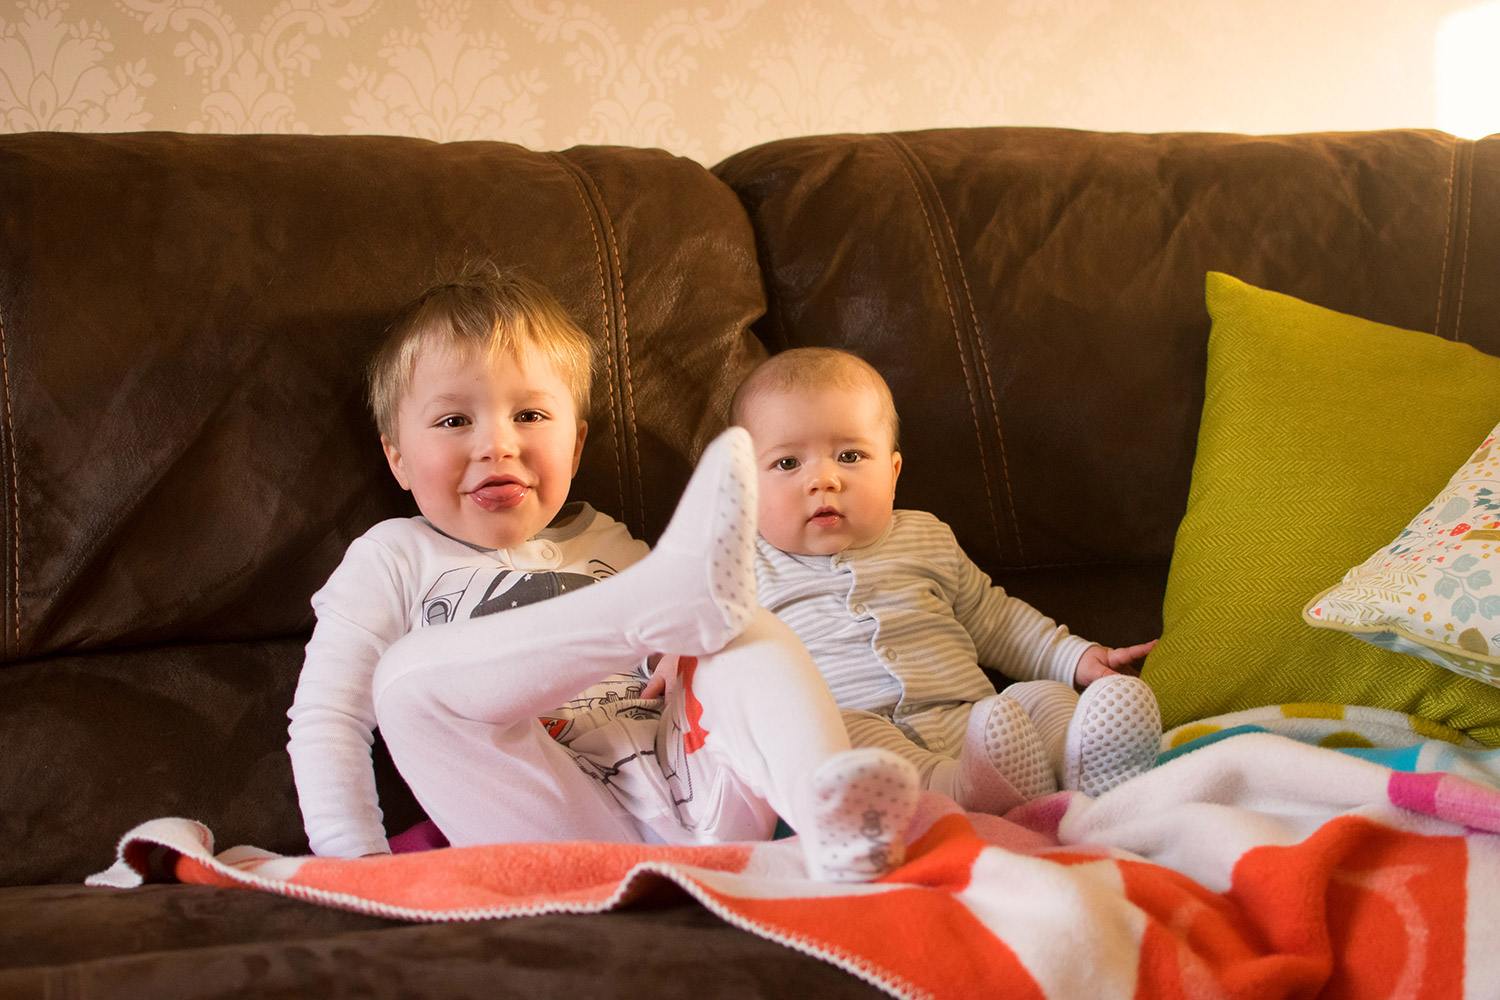 The Siblings Project {February 2017} - 6 month old baby boy with his pre-school toddler 3 year old brother cuddling together on the sofa wearing Gap astronaut onesie and George striped sleepsuit smiling in sunny glow for the siblings project